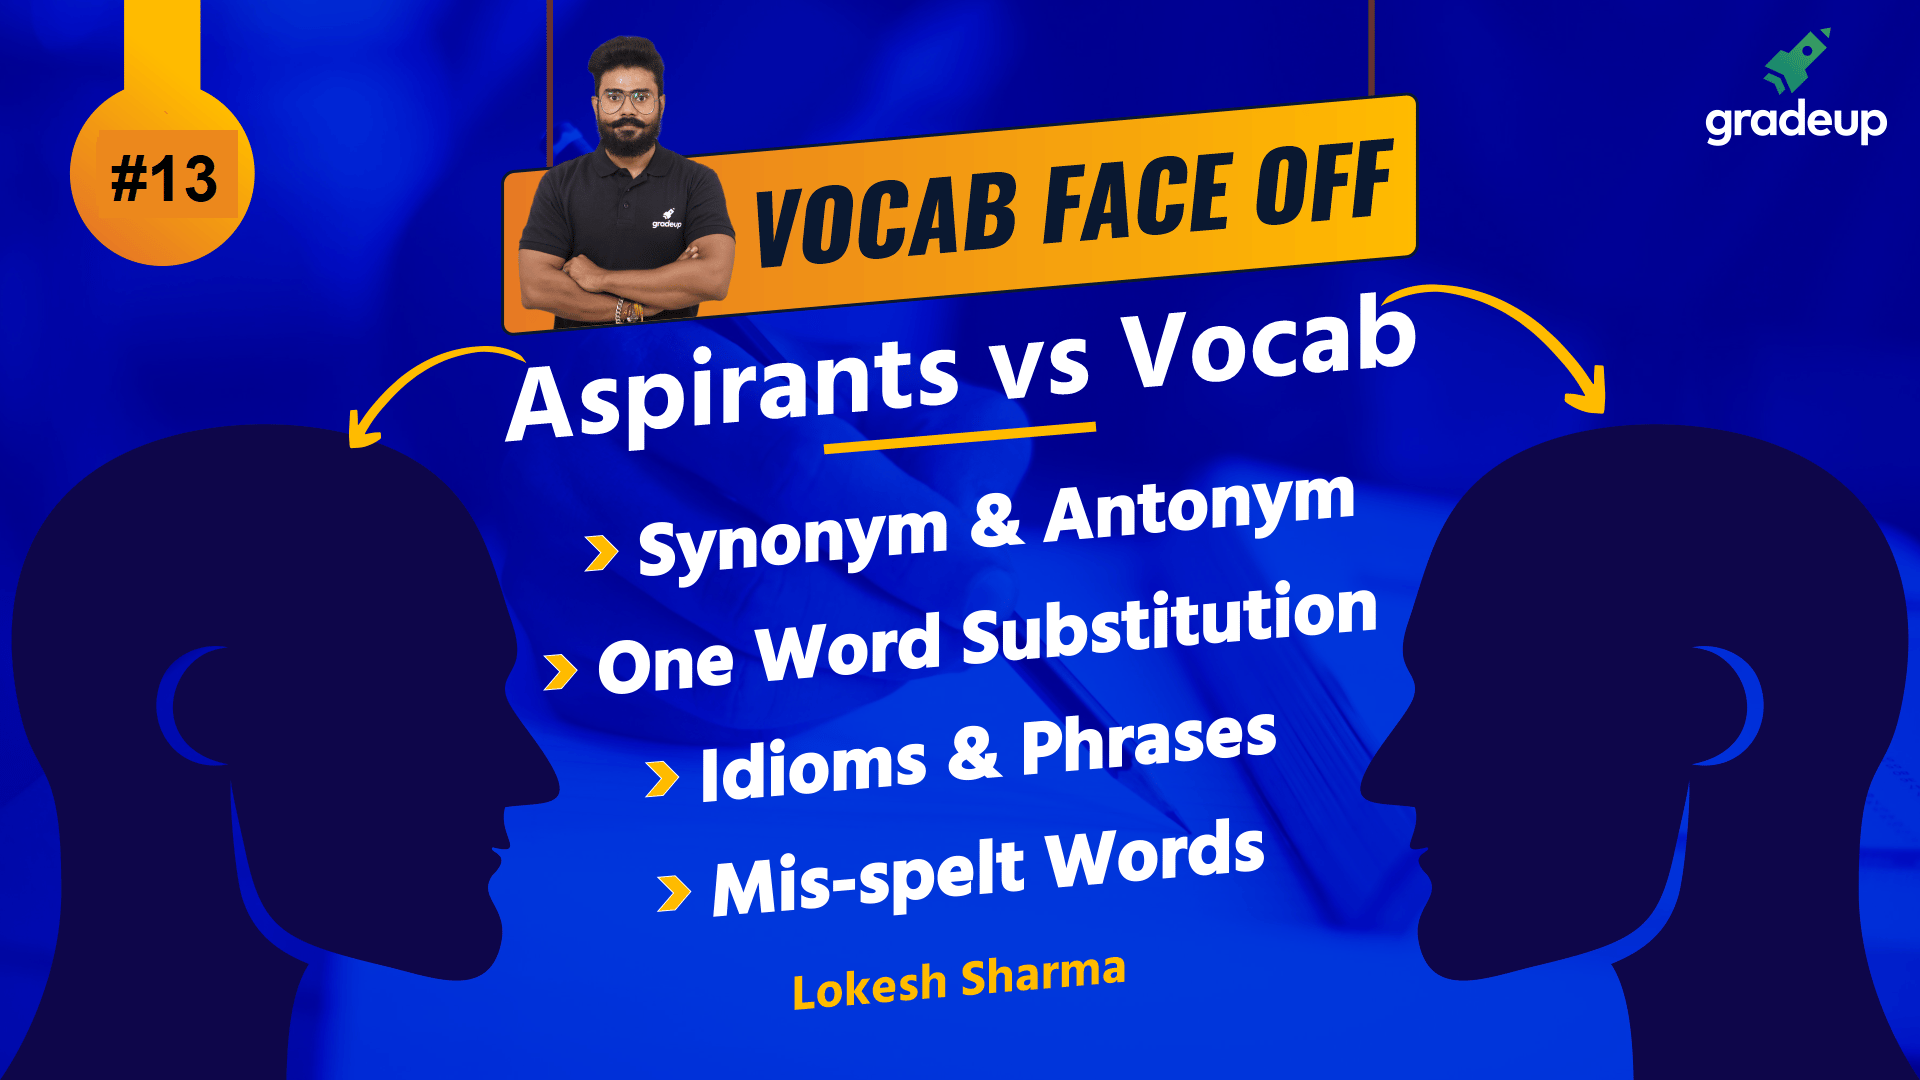 Vocab Faceoff - Aspirants Vs Vocab: Class 13